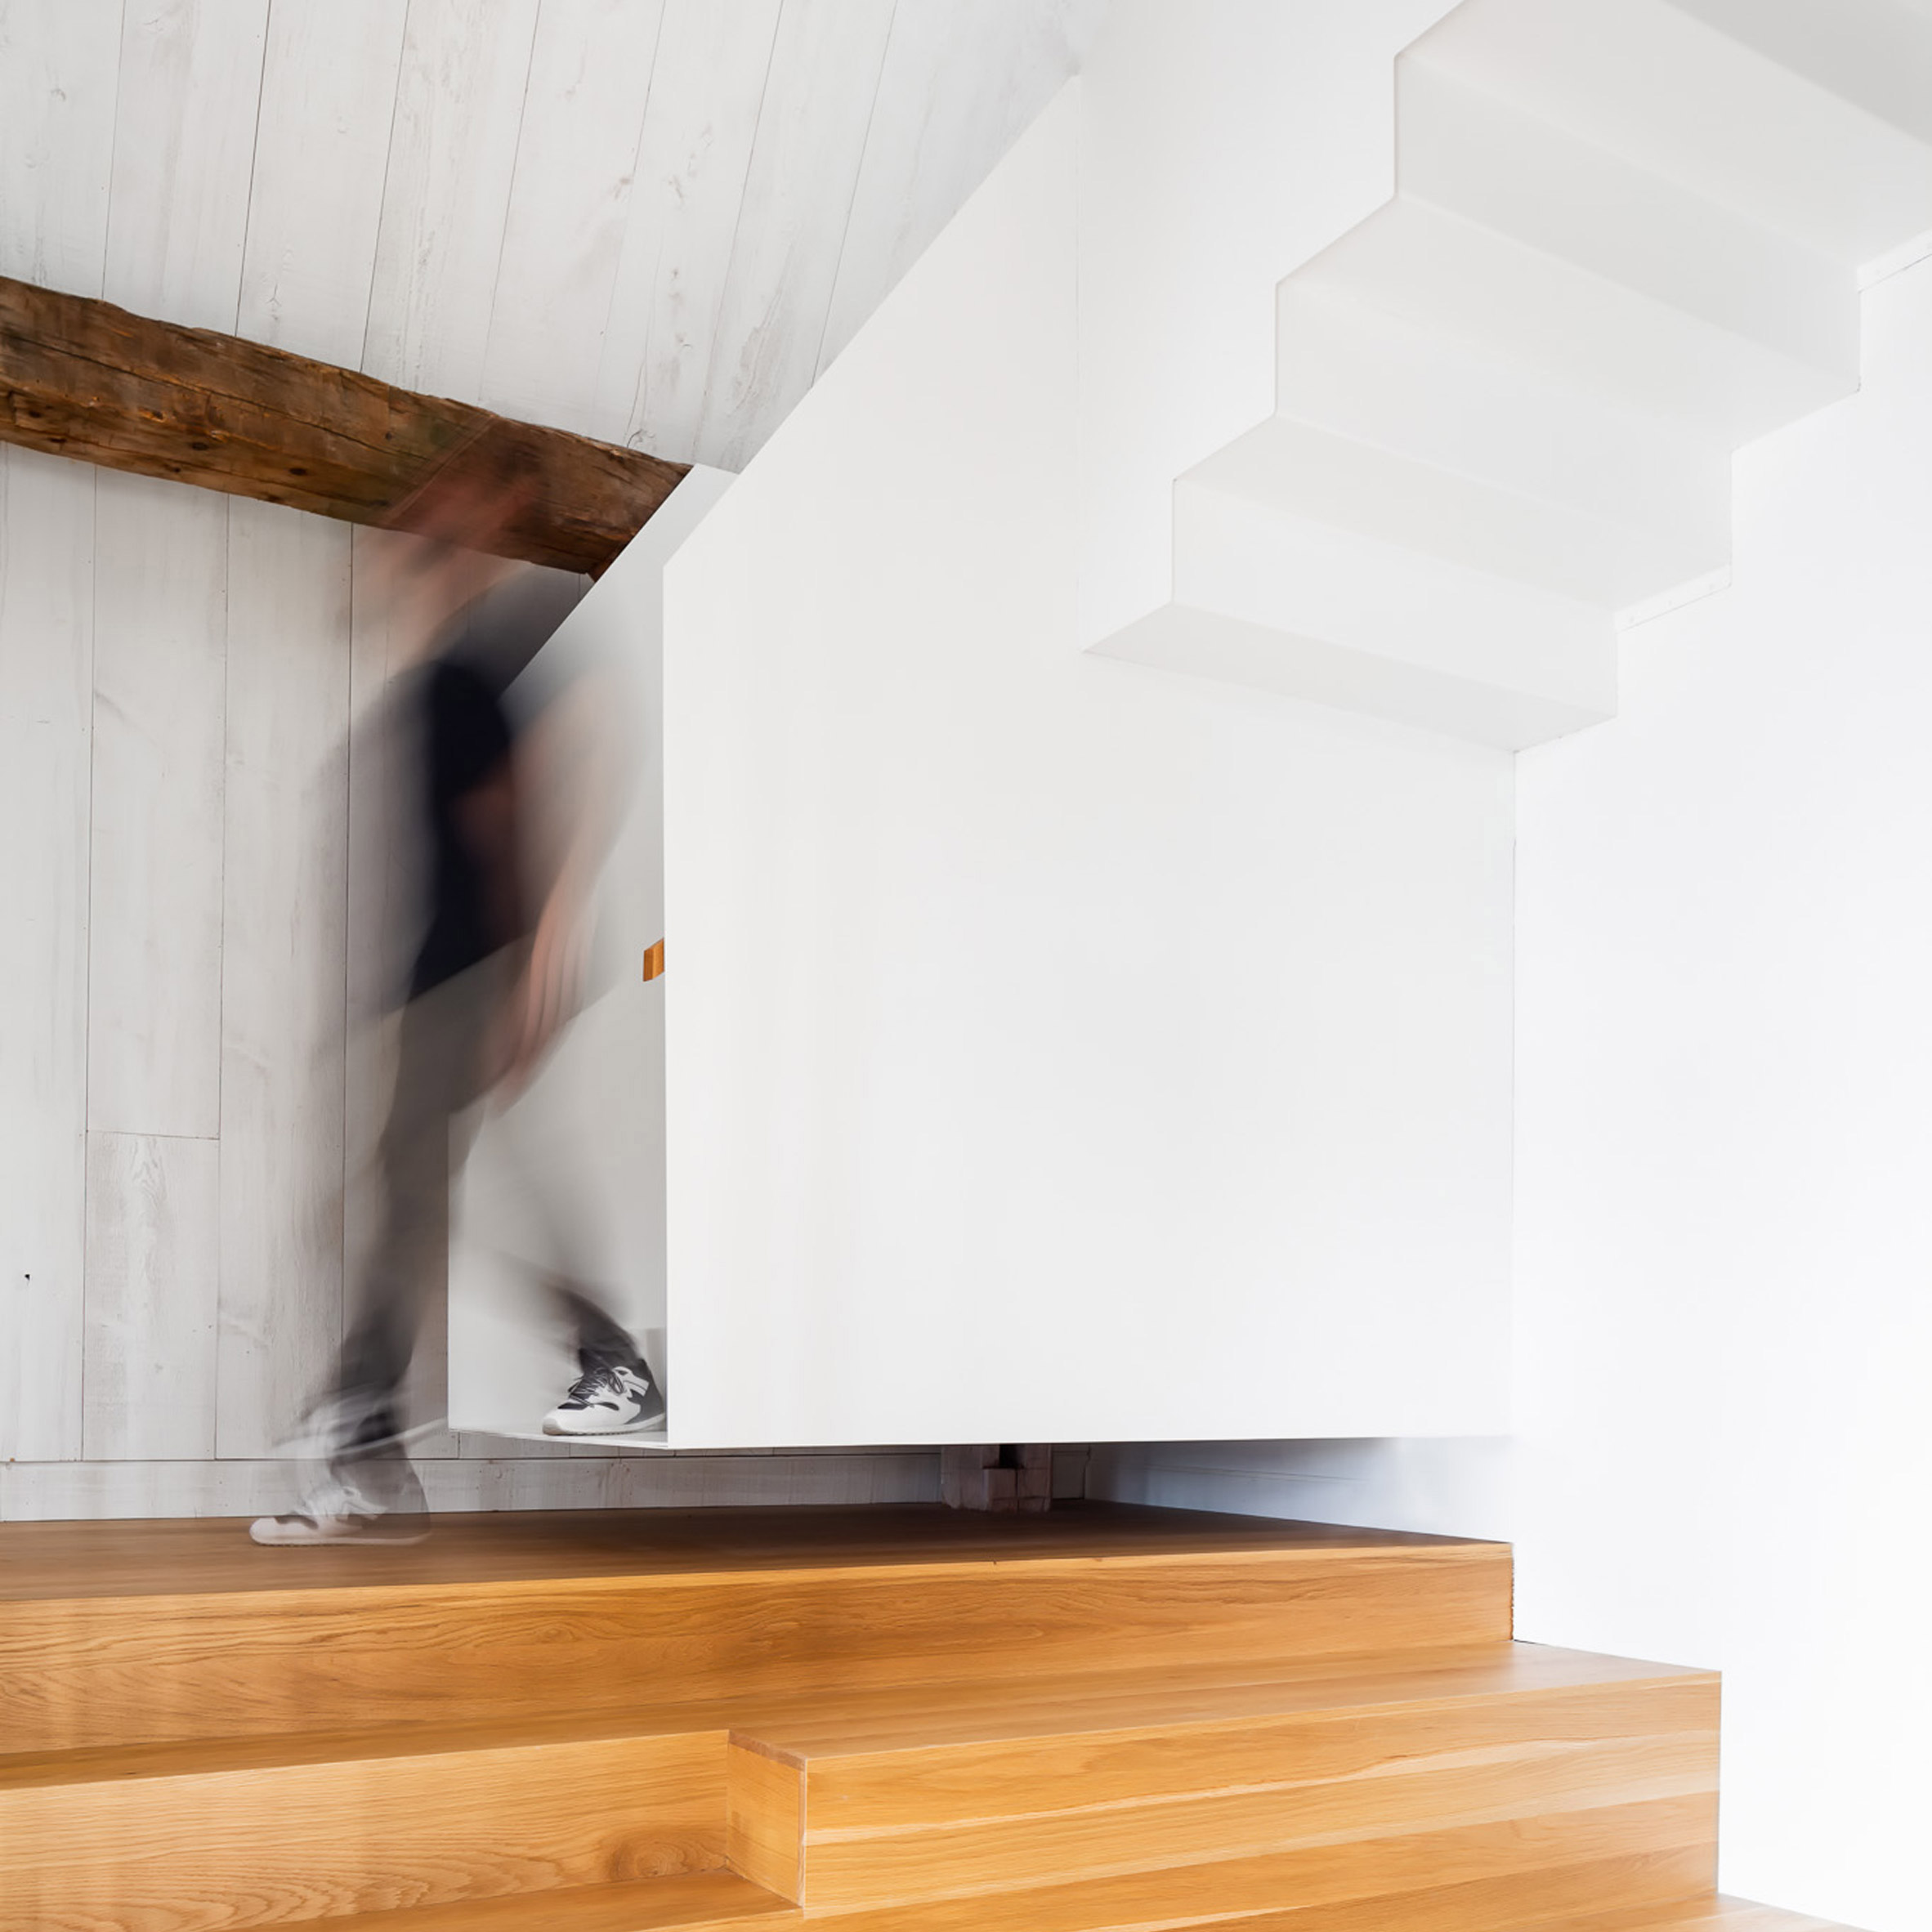 Dezeen's top 10 staircases of 2019: The Barn, Canada, by La Firme